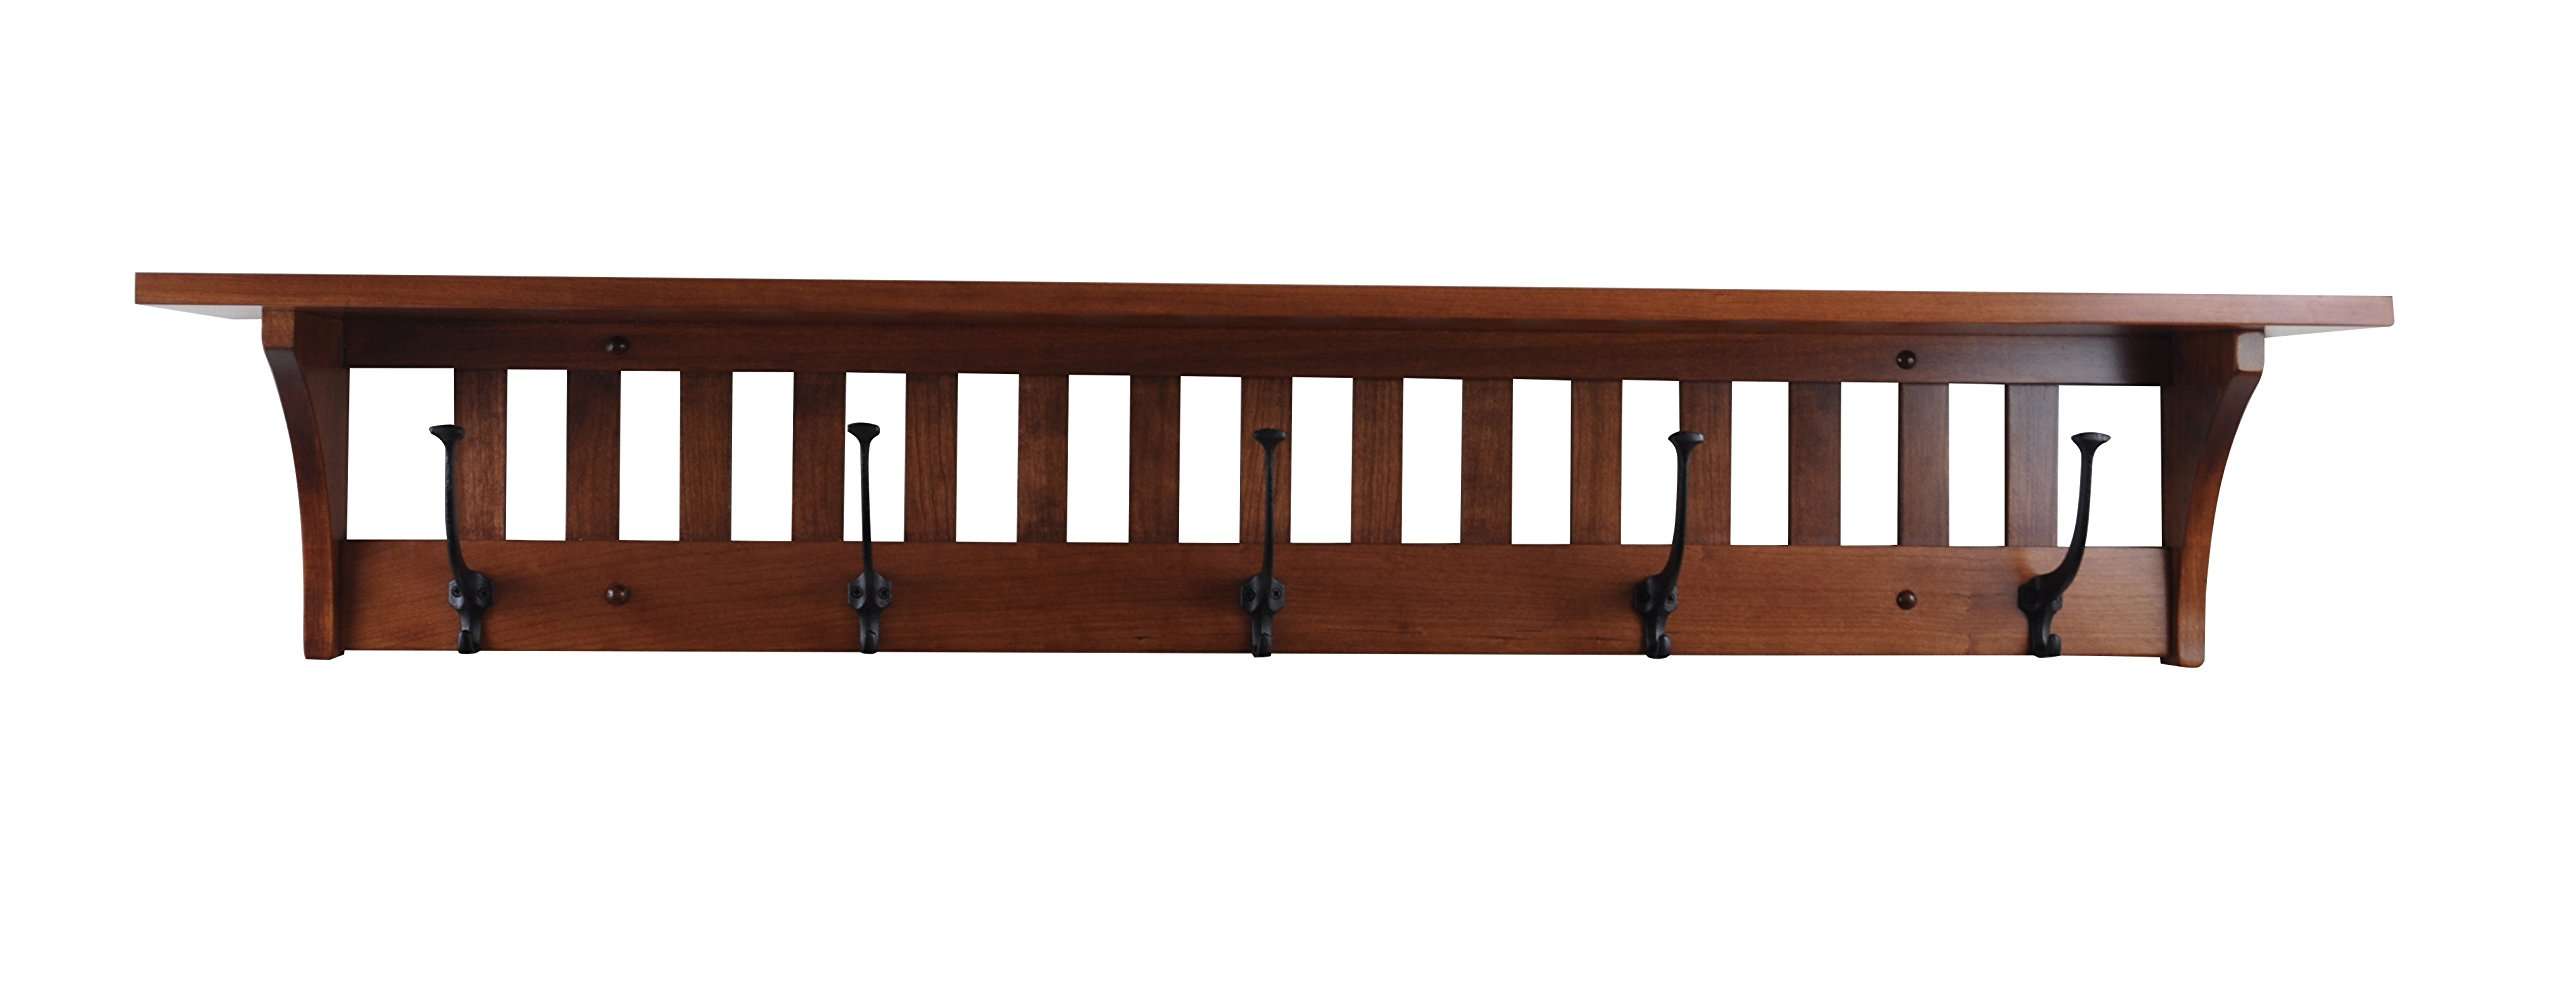 Wood Coat Rack Shelf Wall Mounted, Mission, 5 Hook, Cherry Wood, Contact us with your stain, Custom Available